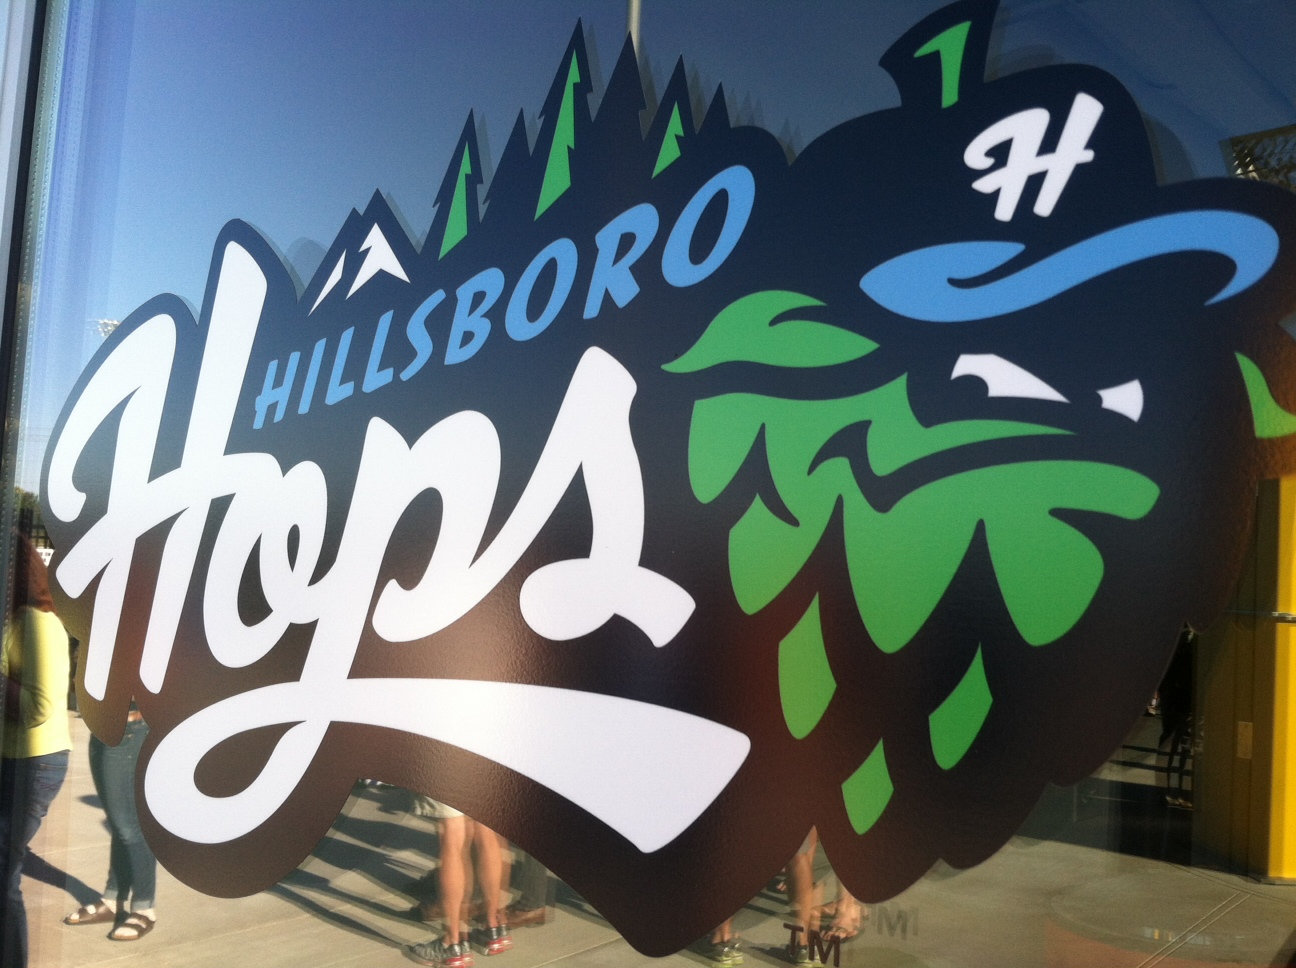 Hillsboro Hops Bake This Day Our Daily Bread